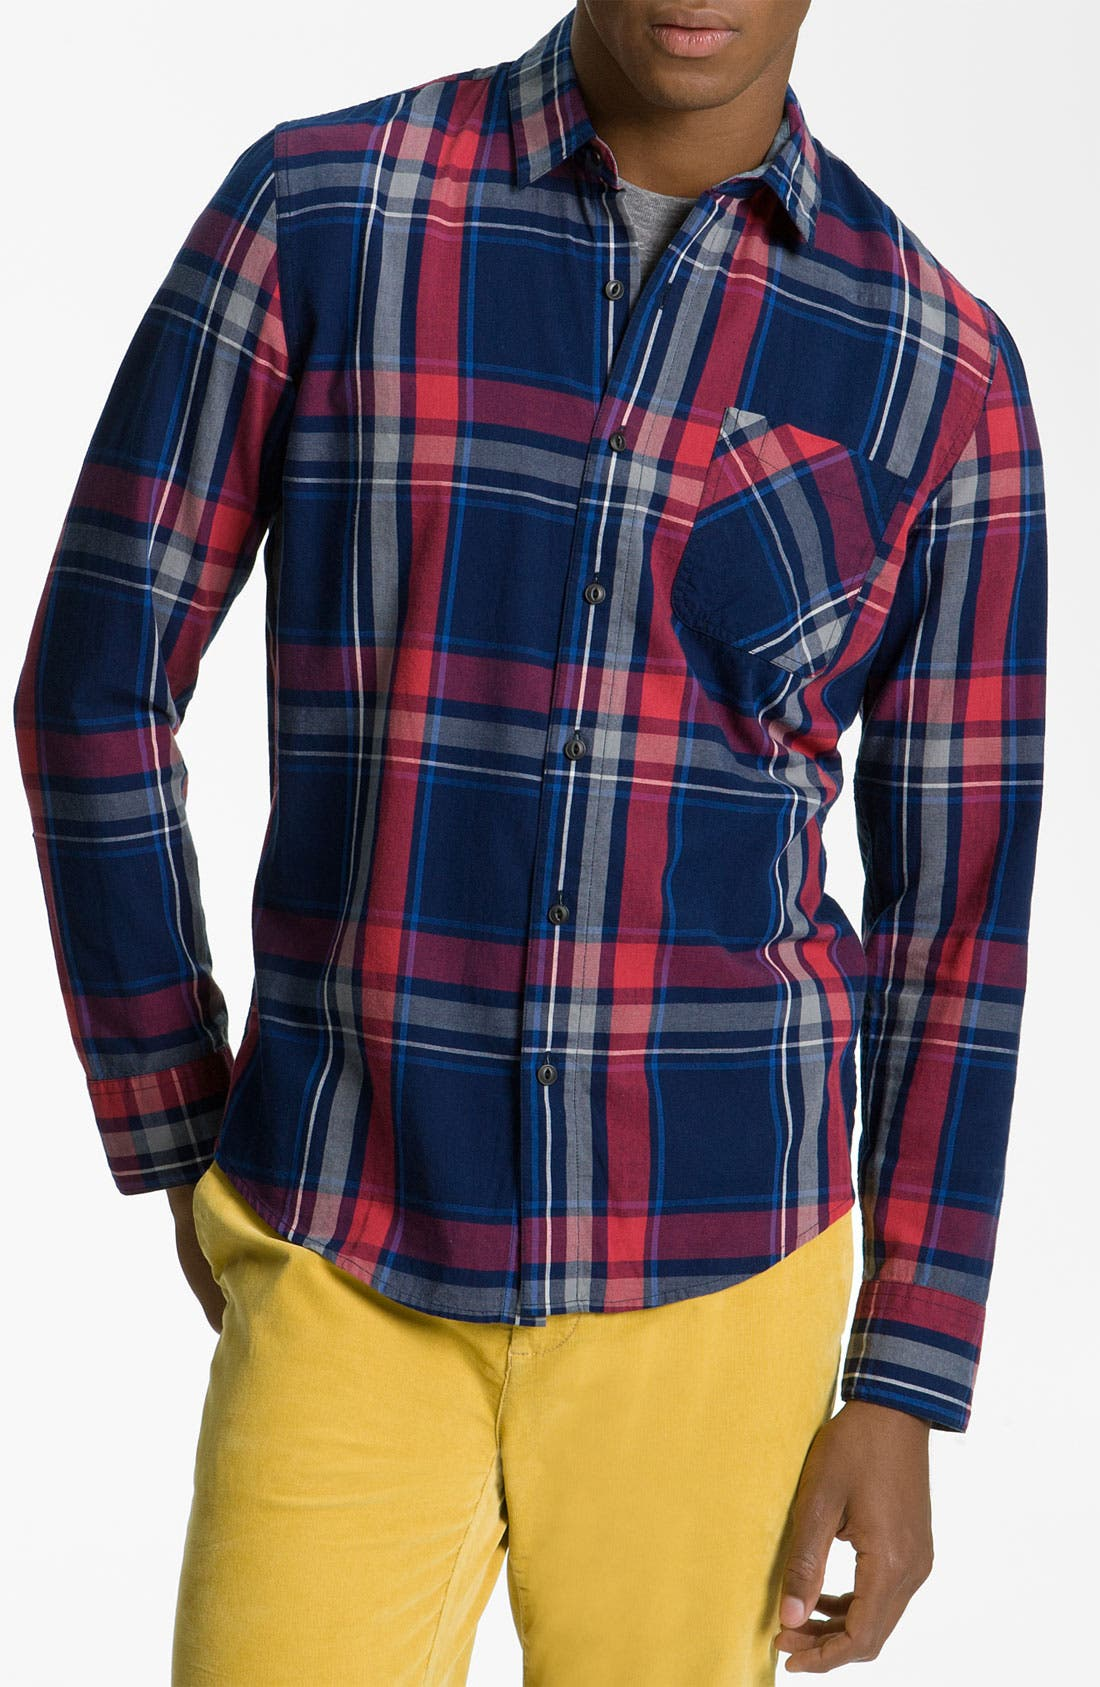 Main Image - 1901 Yarn Dyed Plaid Woven Shirt